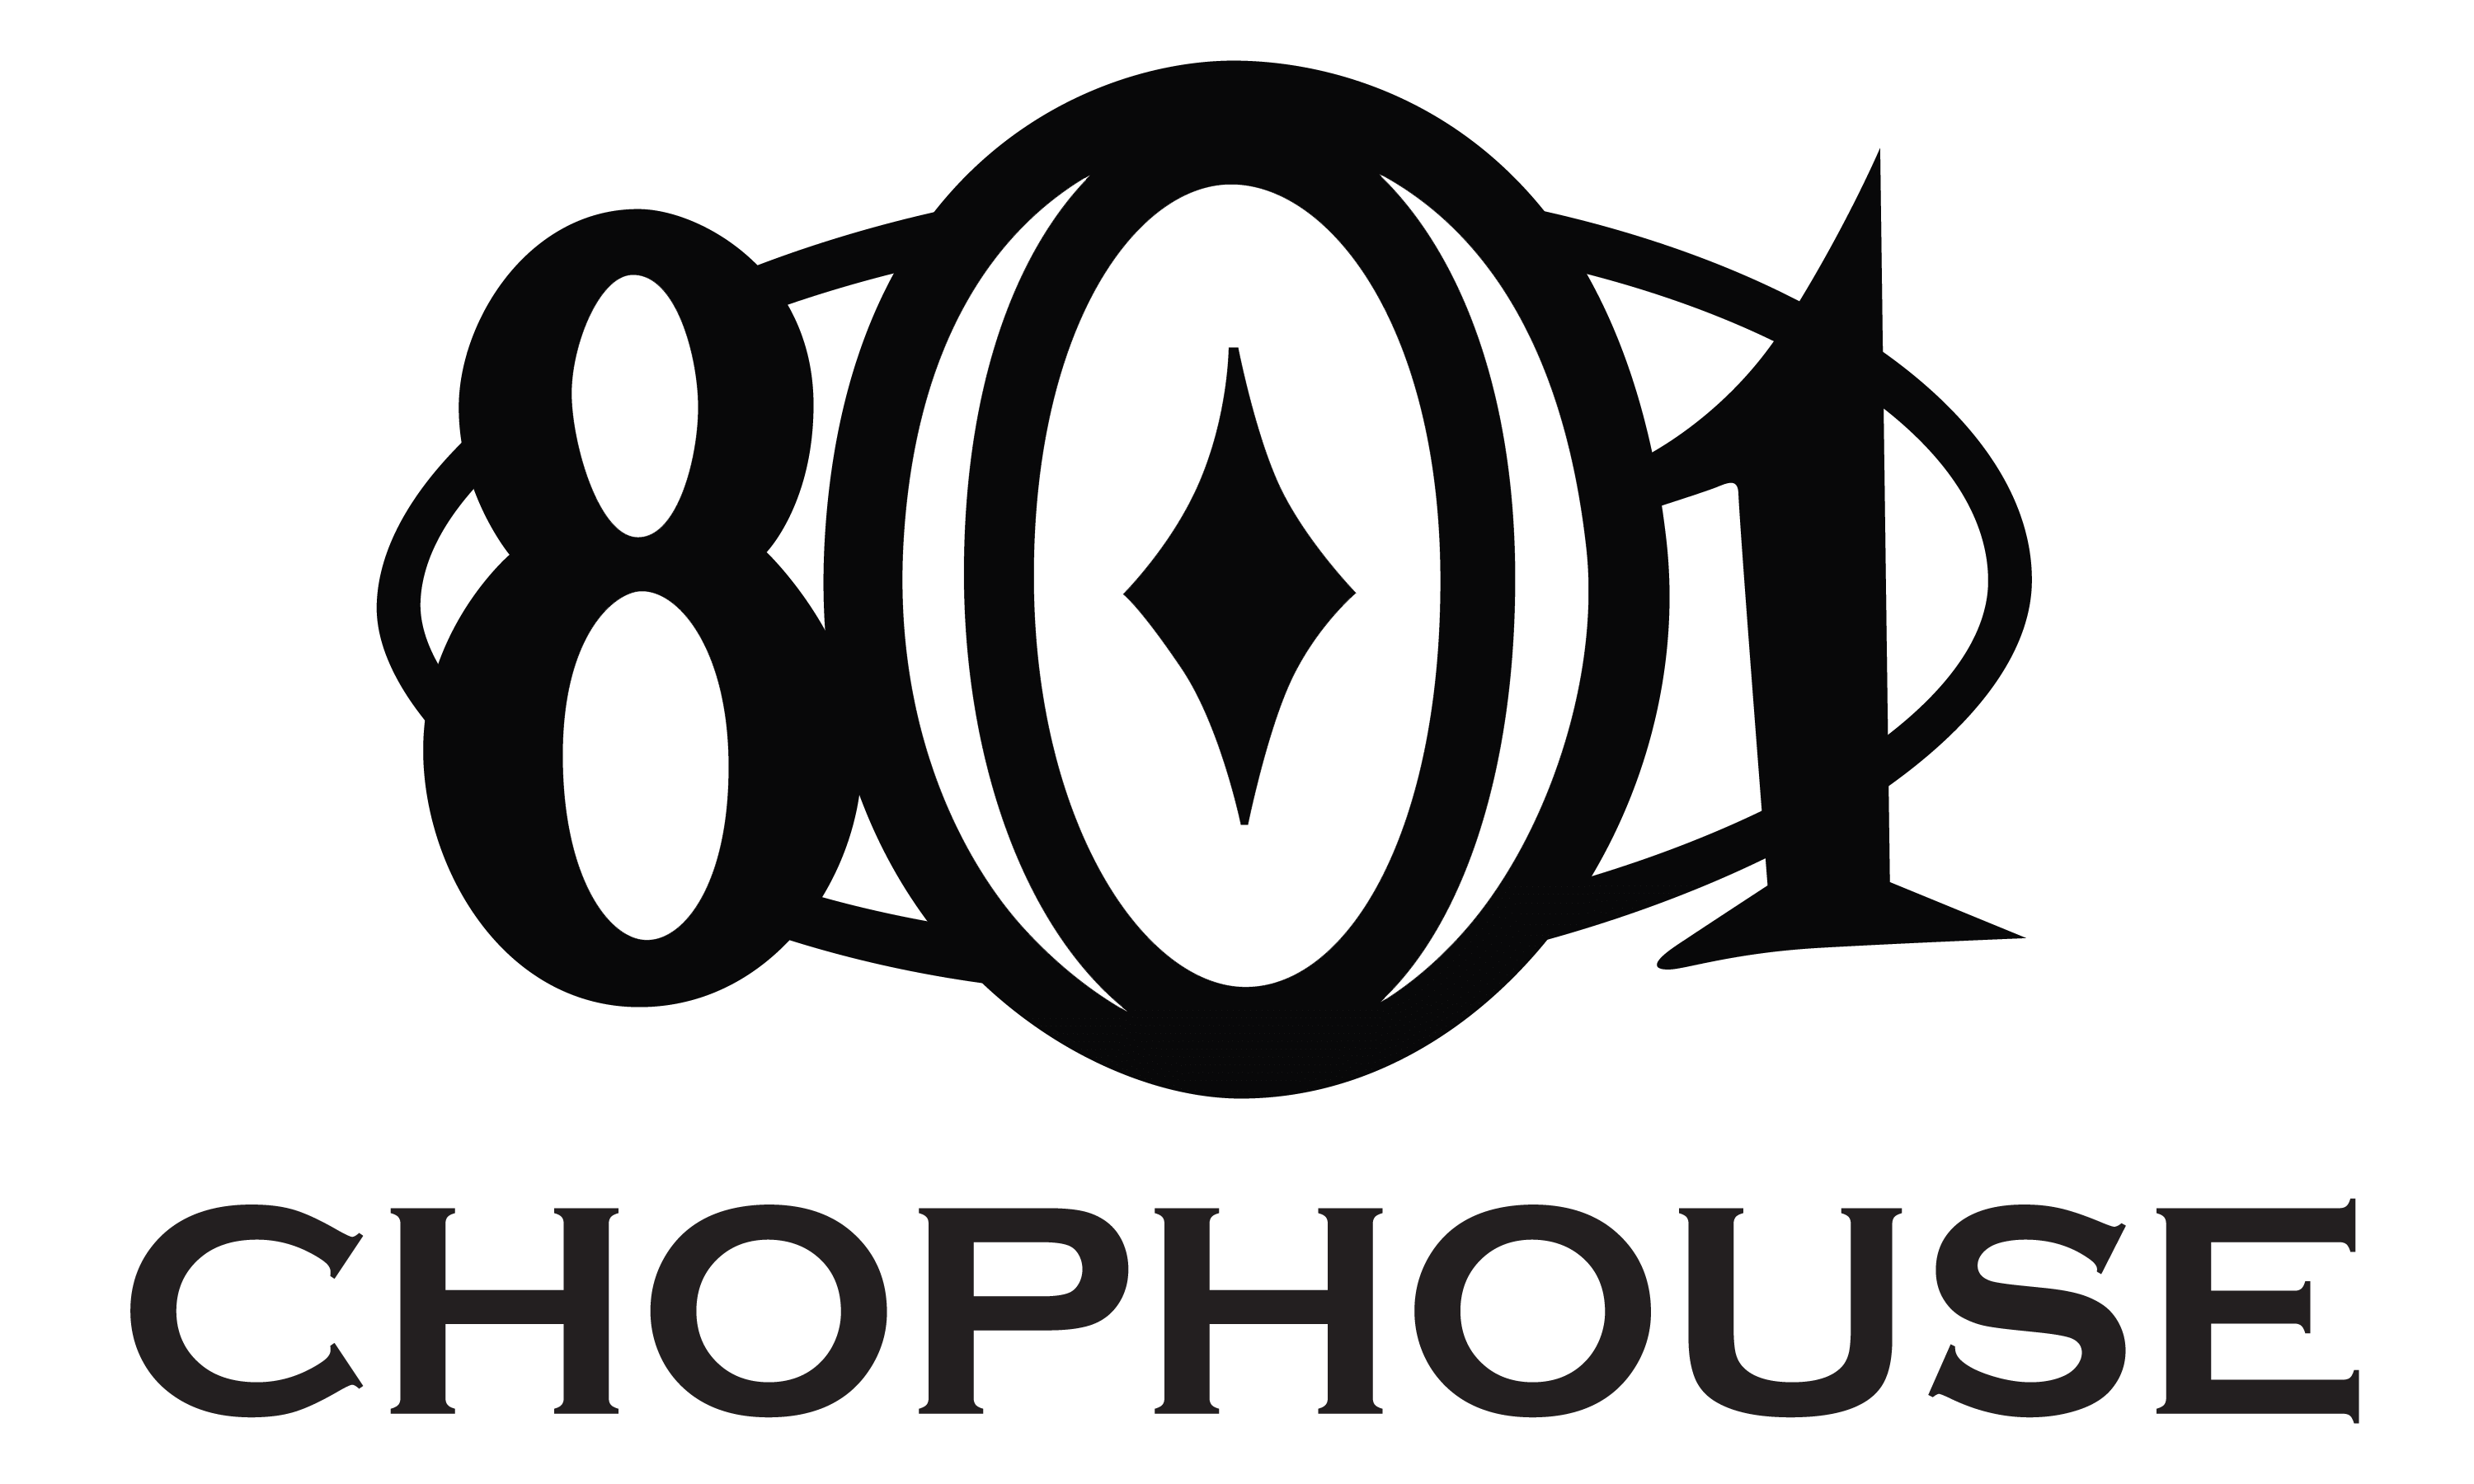 801 Chophouse Logo